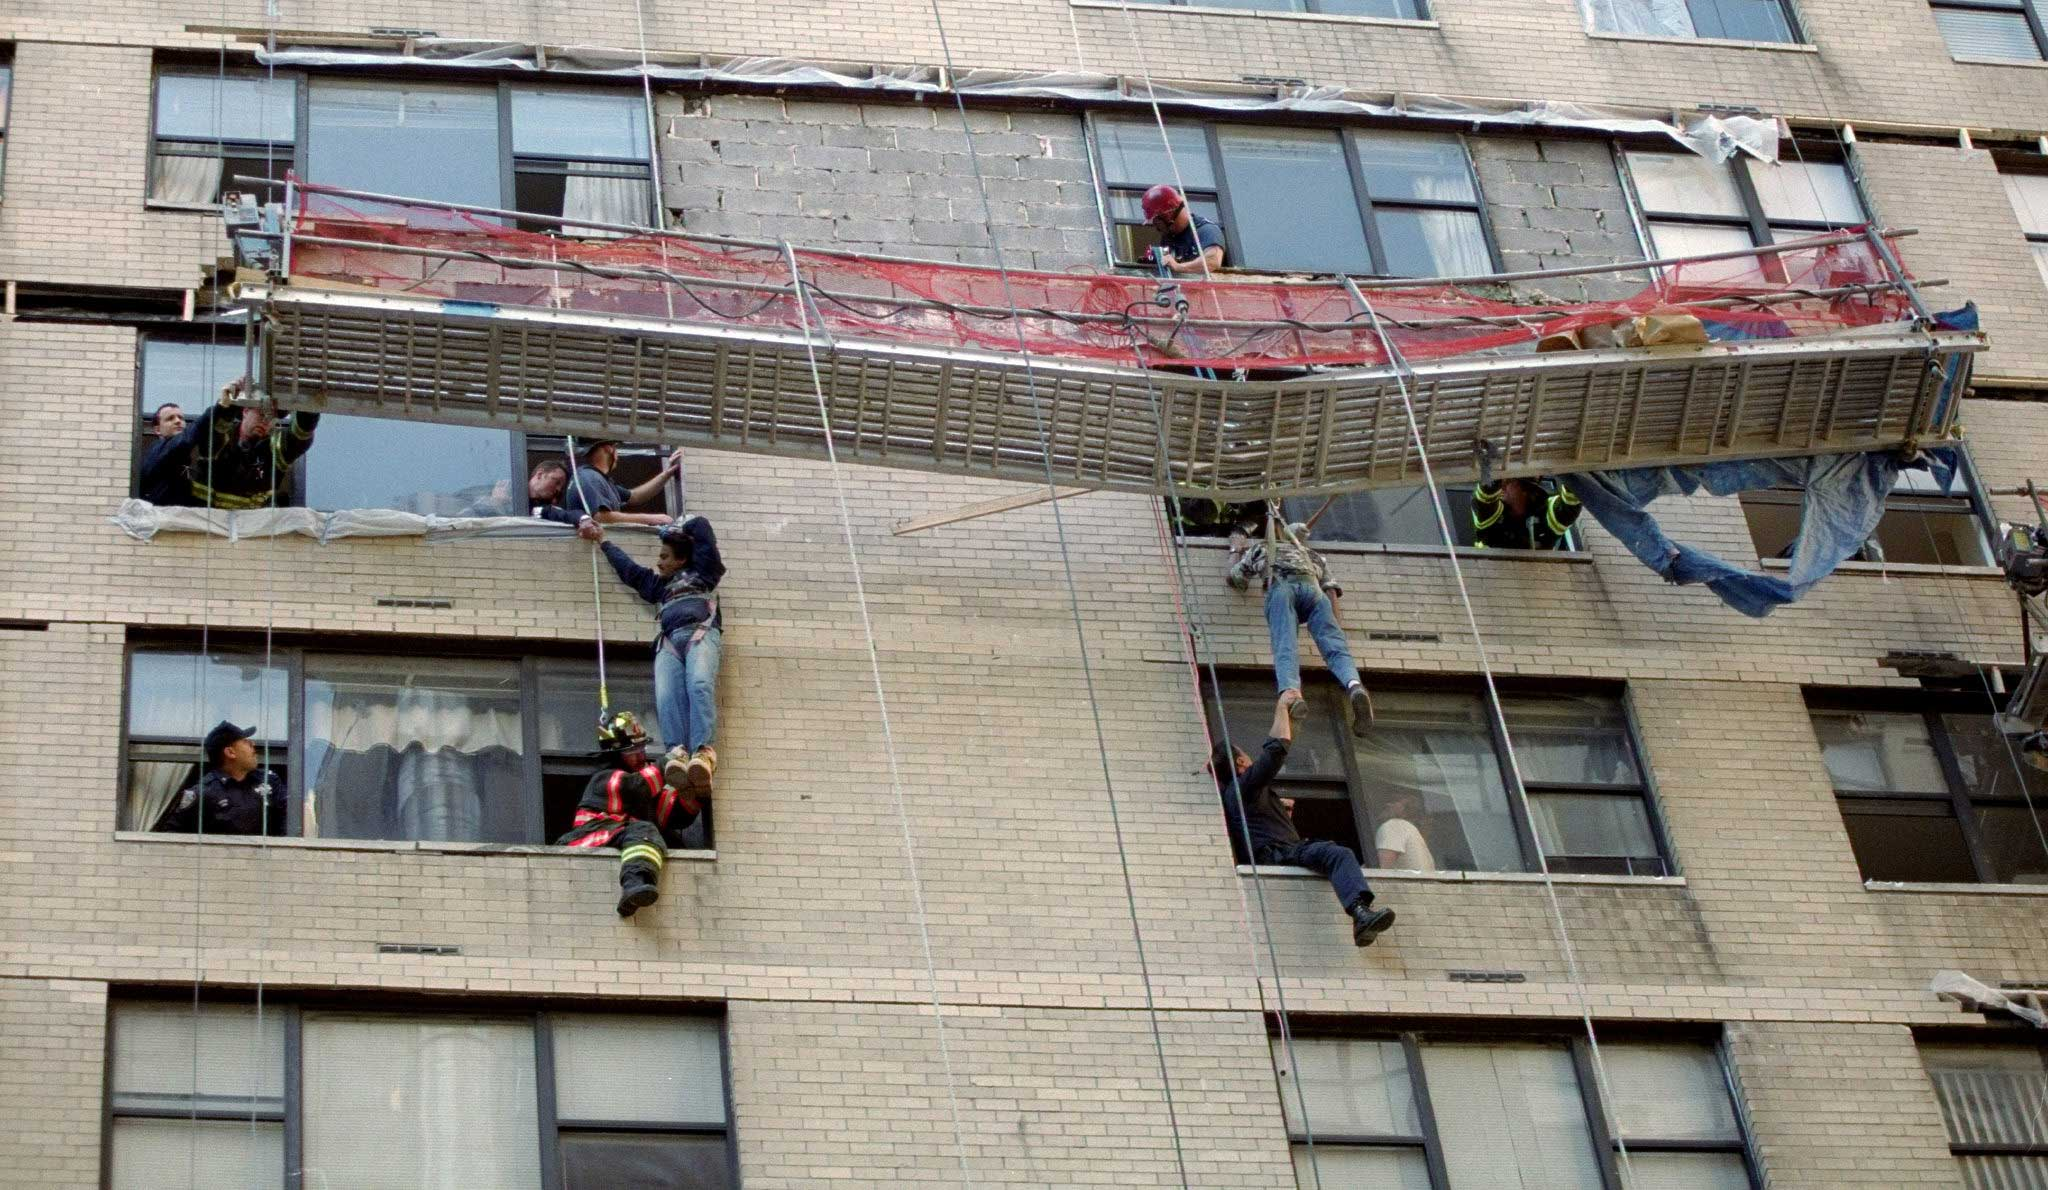 Firefighters rescue two construction workers dangling 8 floors off the ground from a building in Midtown Manhattan in New York City on Oct. 12, 1999.